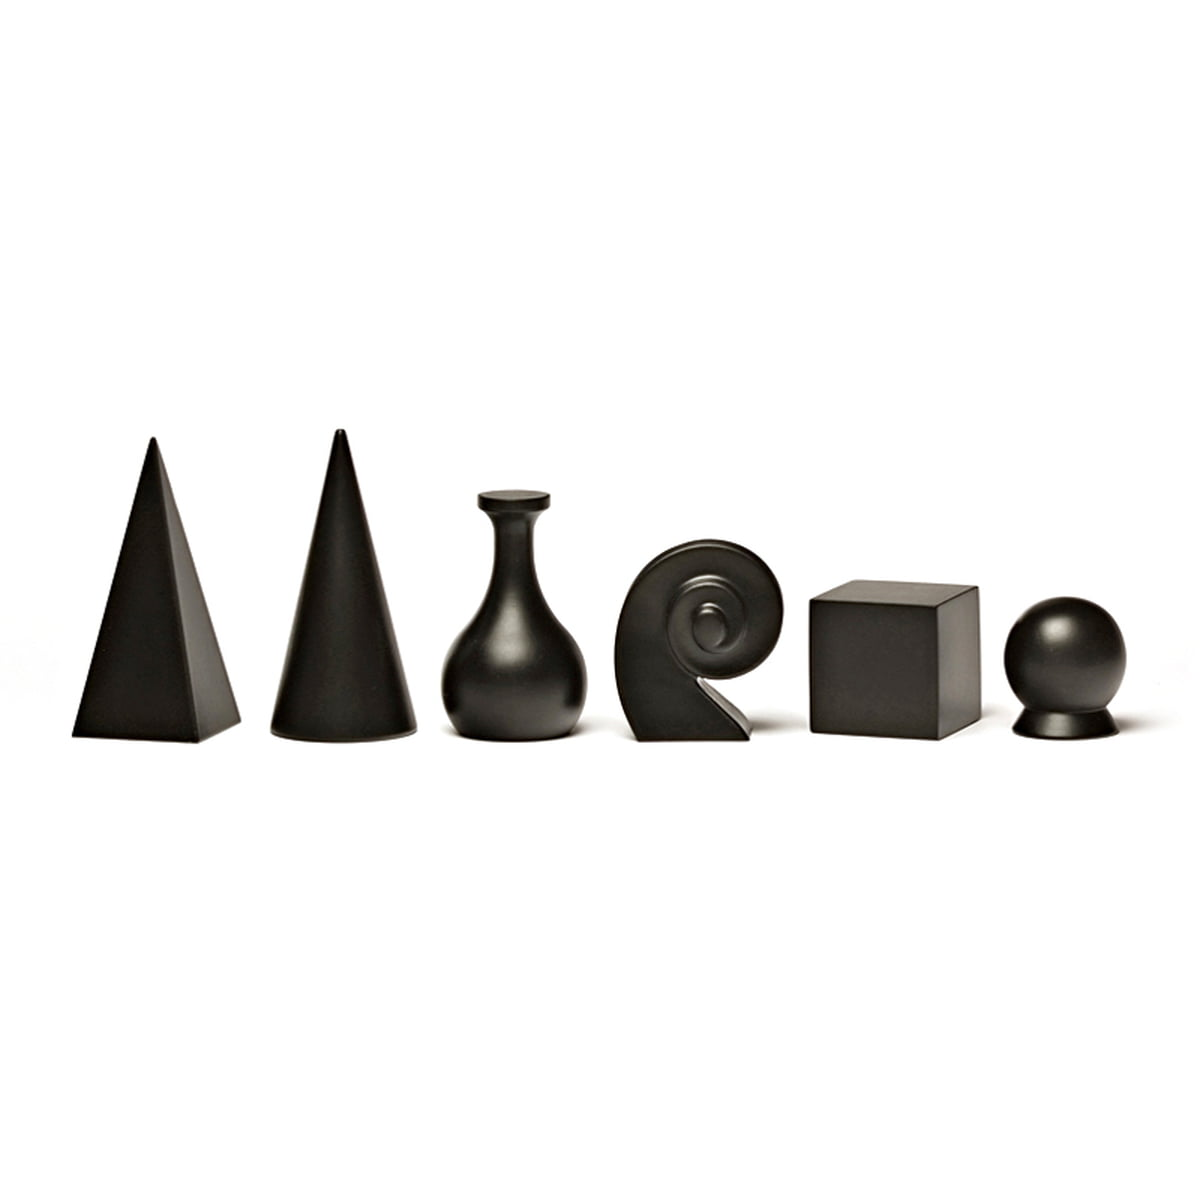 set of chess pieces by man ray in the shop - set of chess pieces by man ray